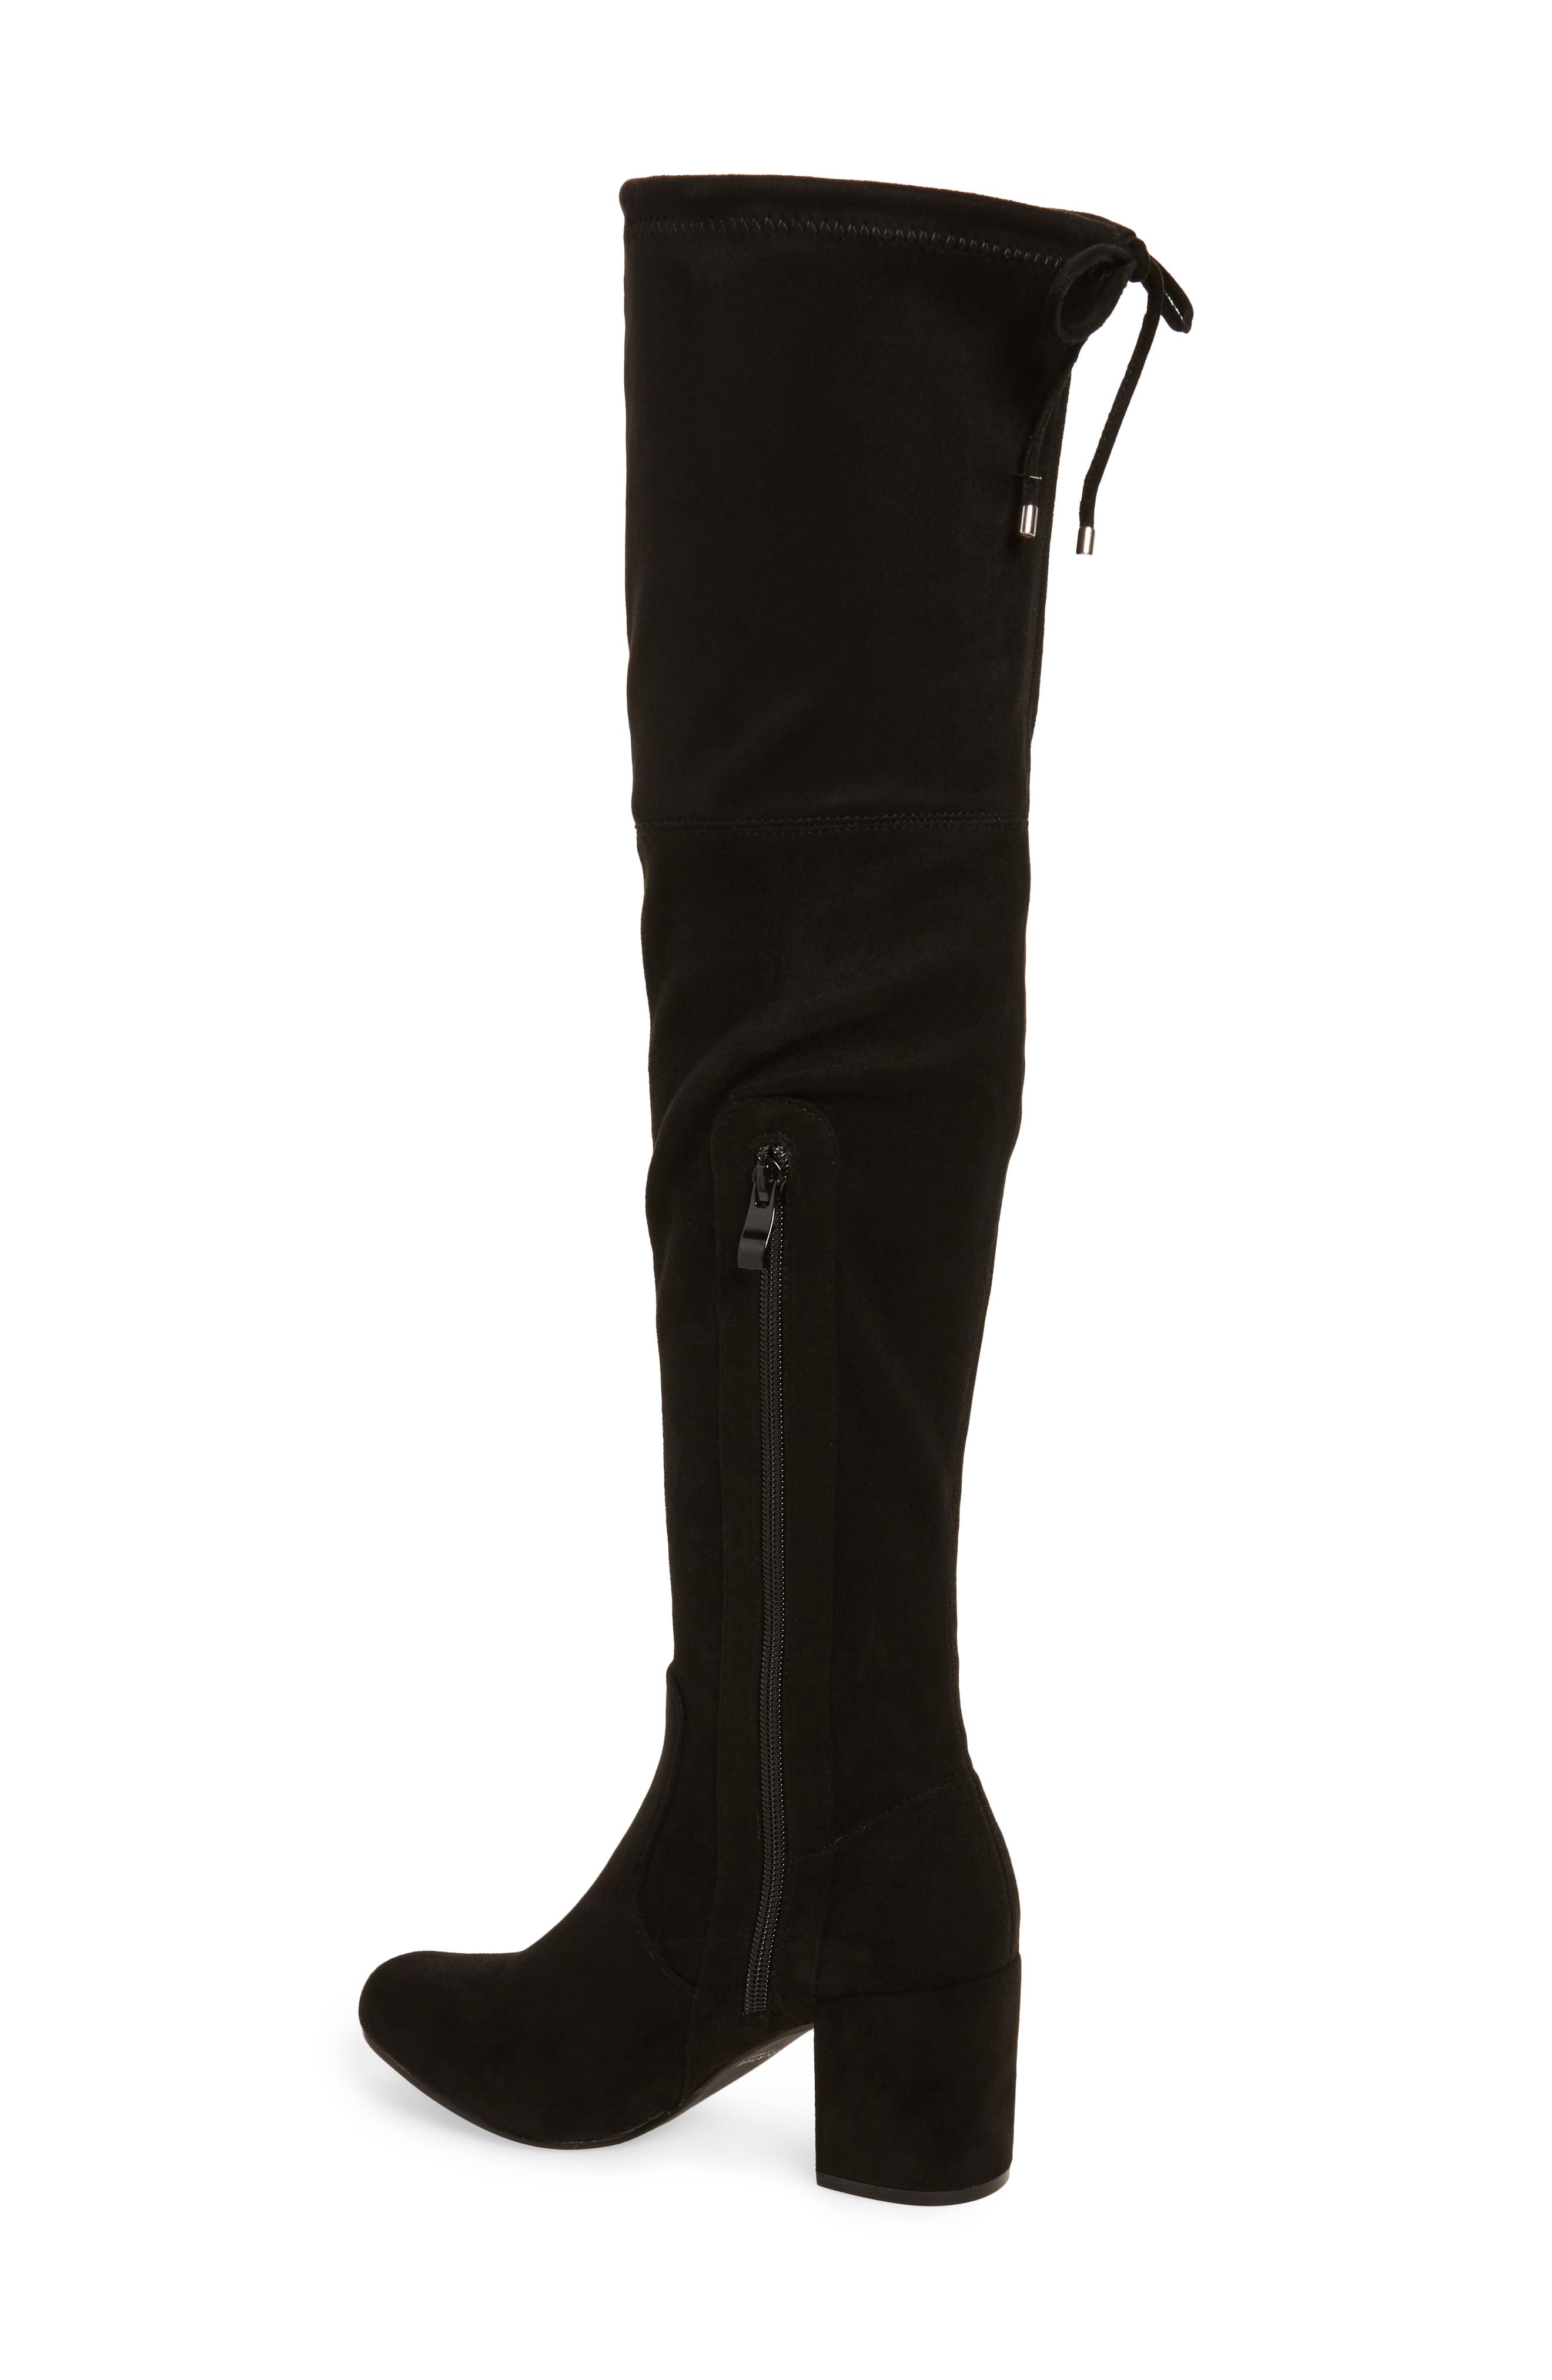 Heartbeat Over the Knee Boot,                             Alternate thumbnail 2, color,                             Black